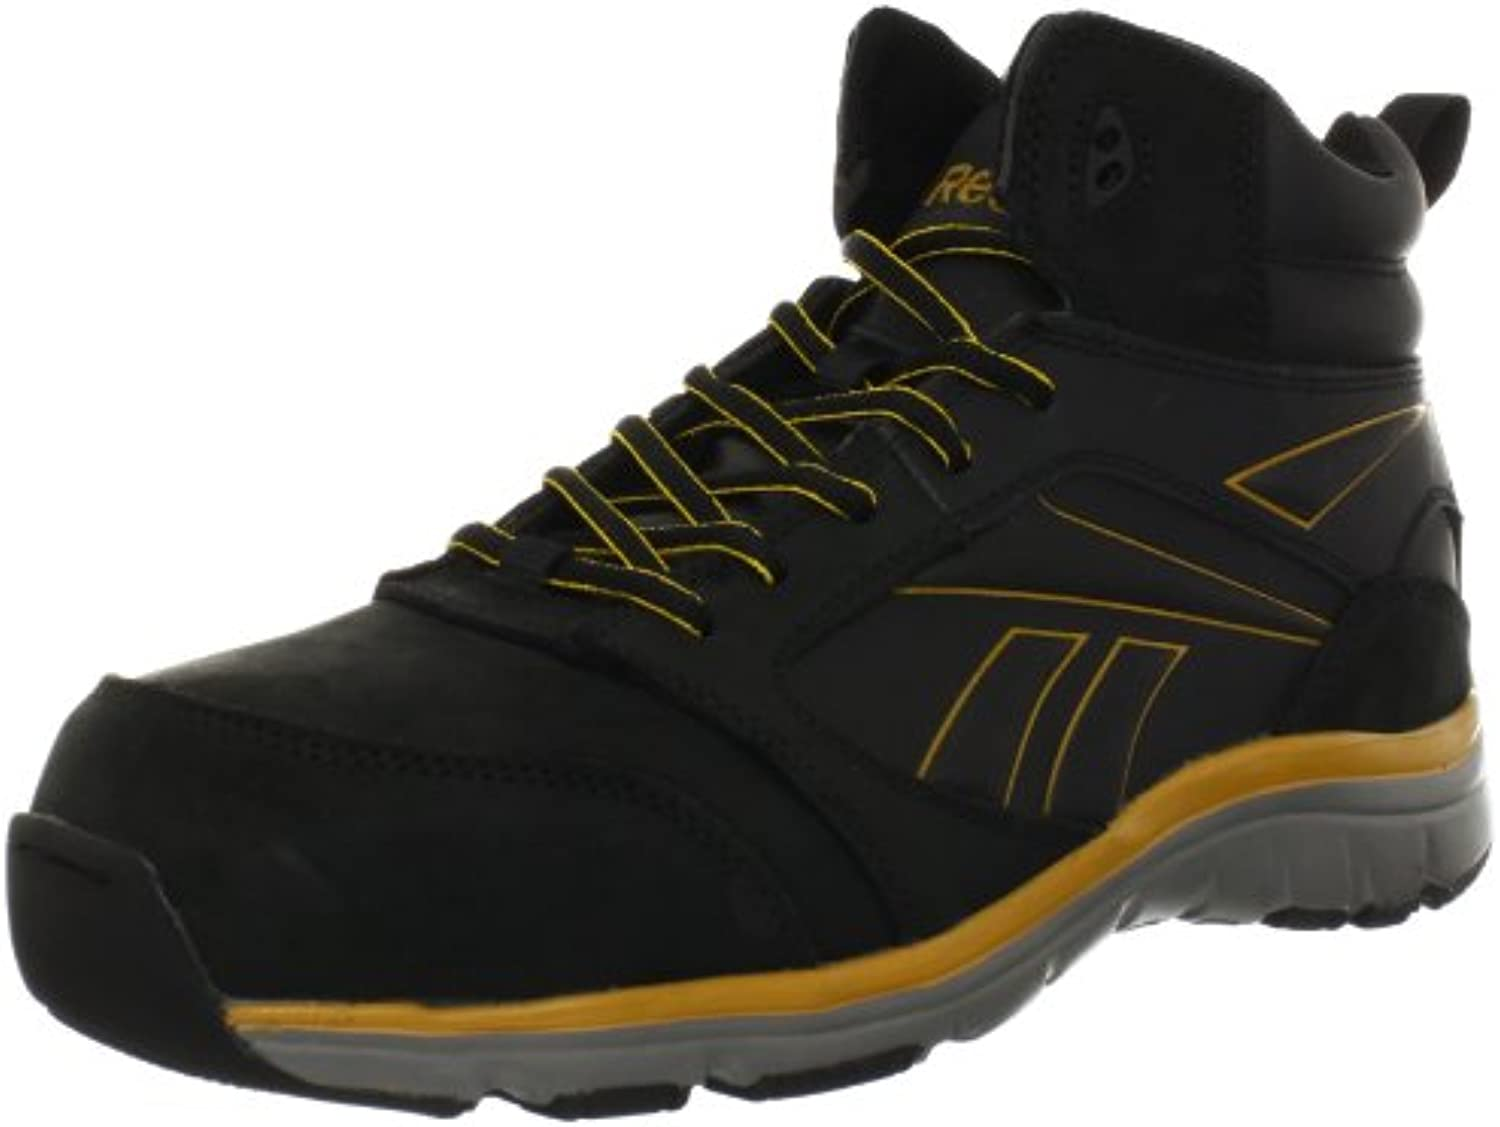 Reebok Work Men's Tarade RB4305 Comp Toe EH Work Boot